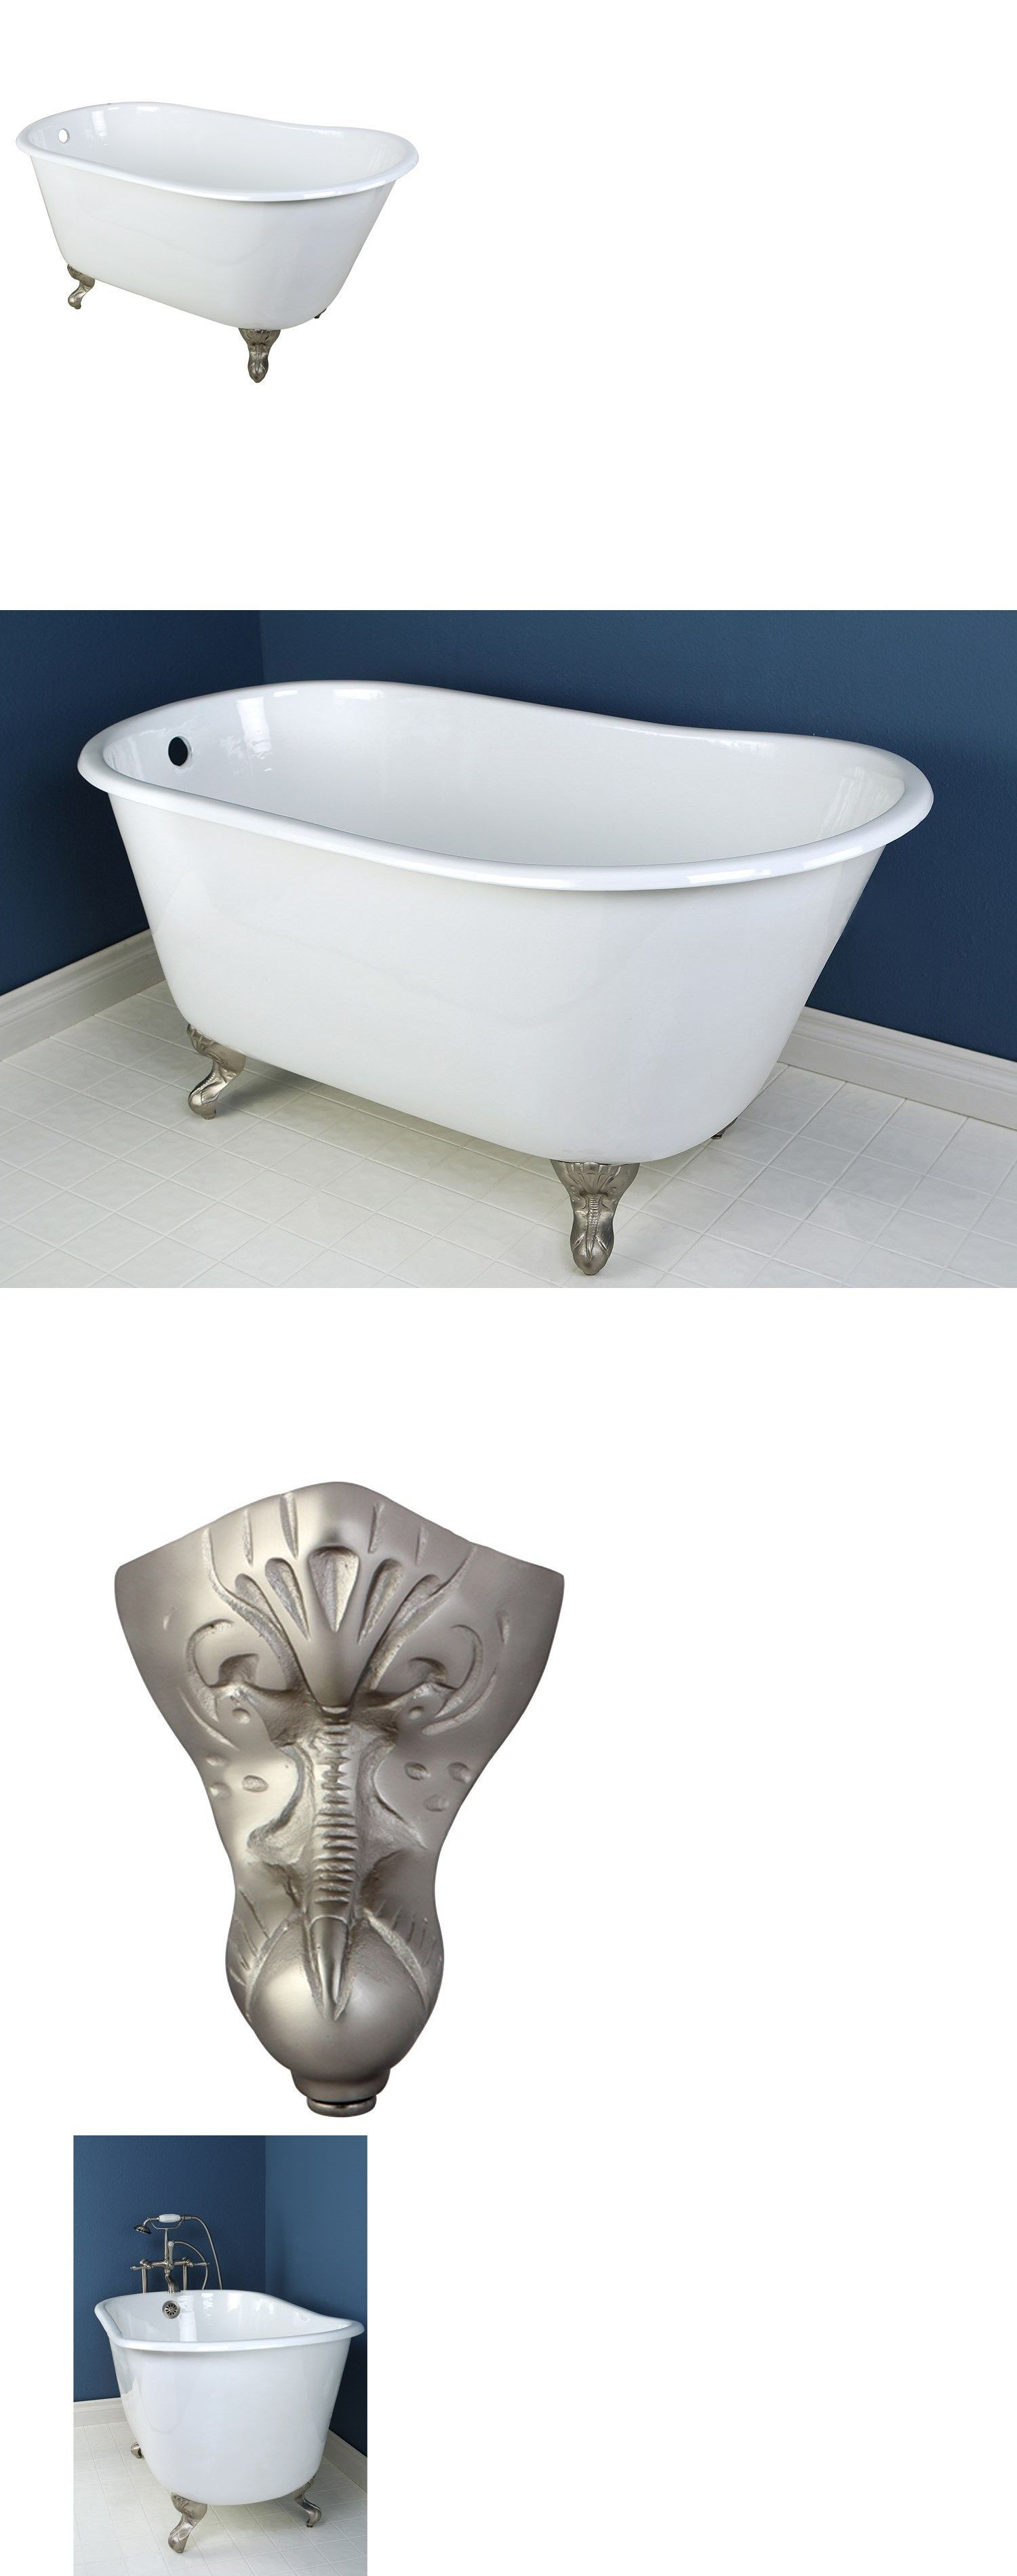 Bathtubs 42025: 53 Small Cast Iron White Slipper Clawfoot Bathtub ...